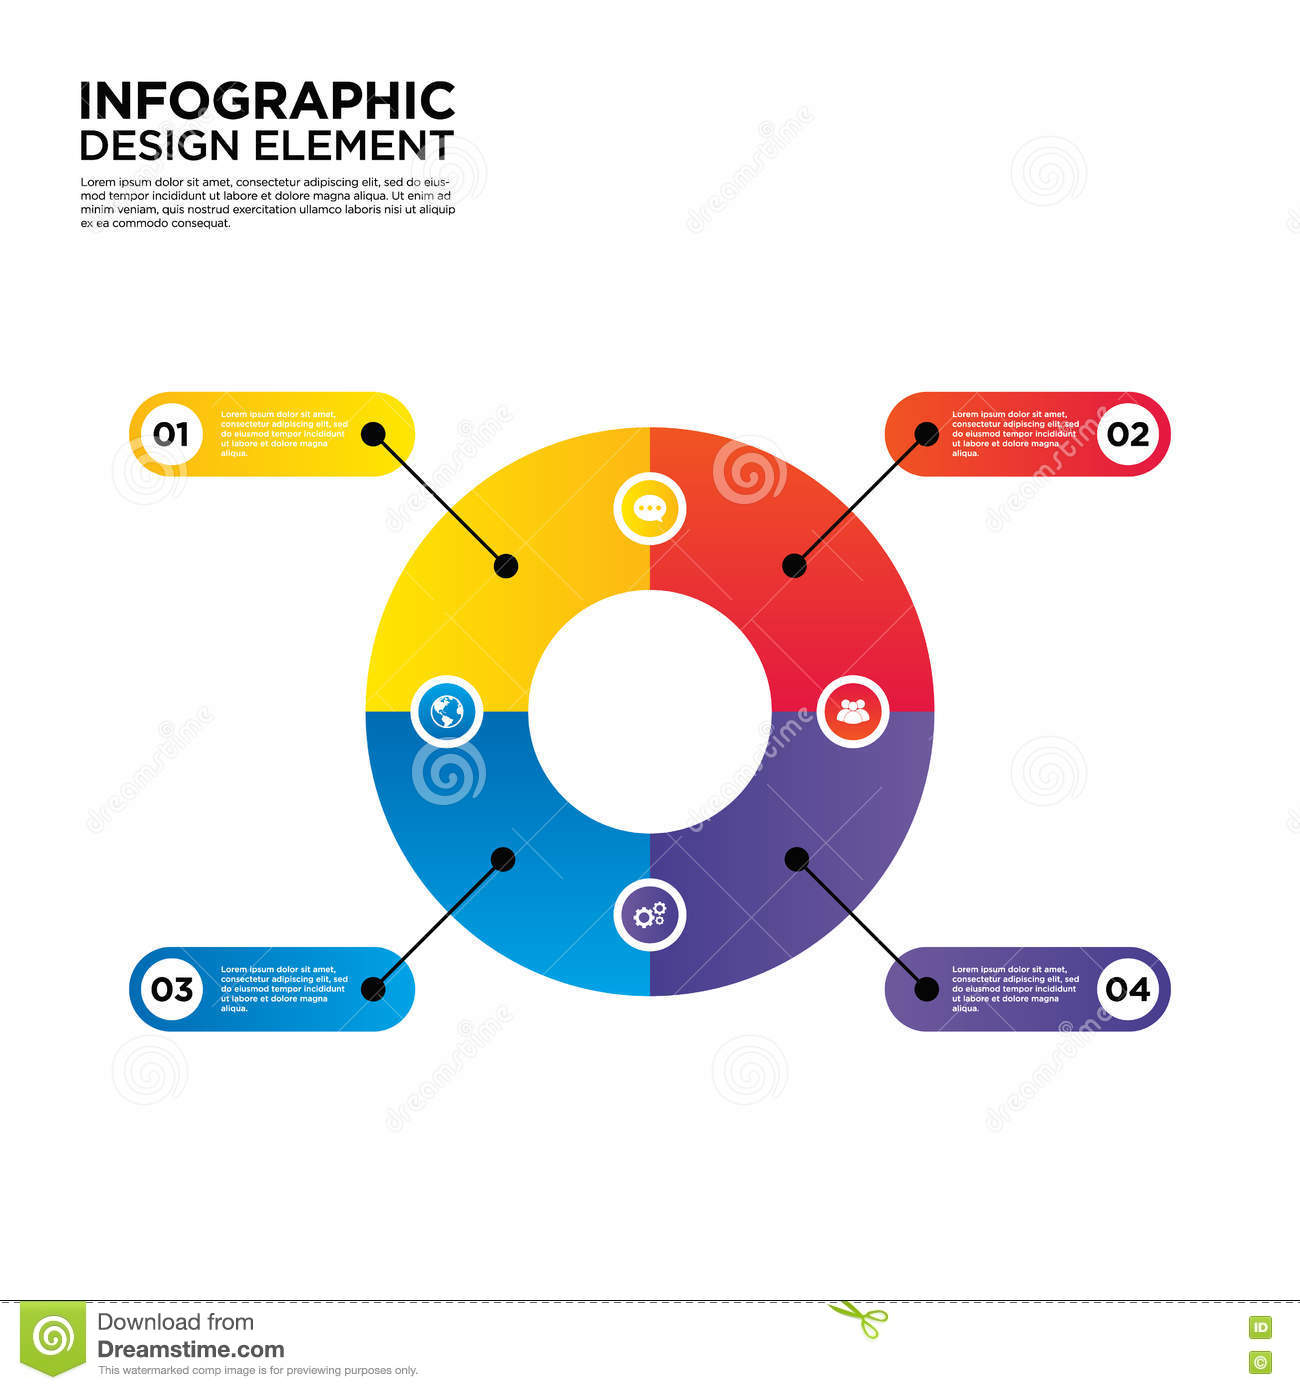 infographic business report layout design element illustration